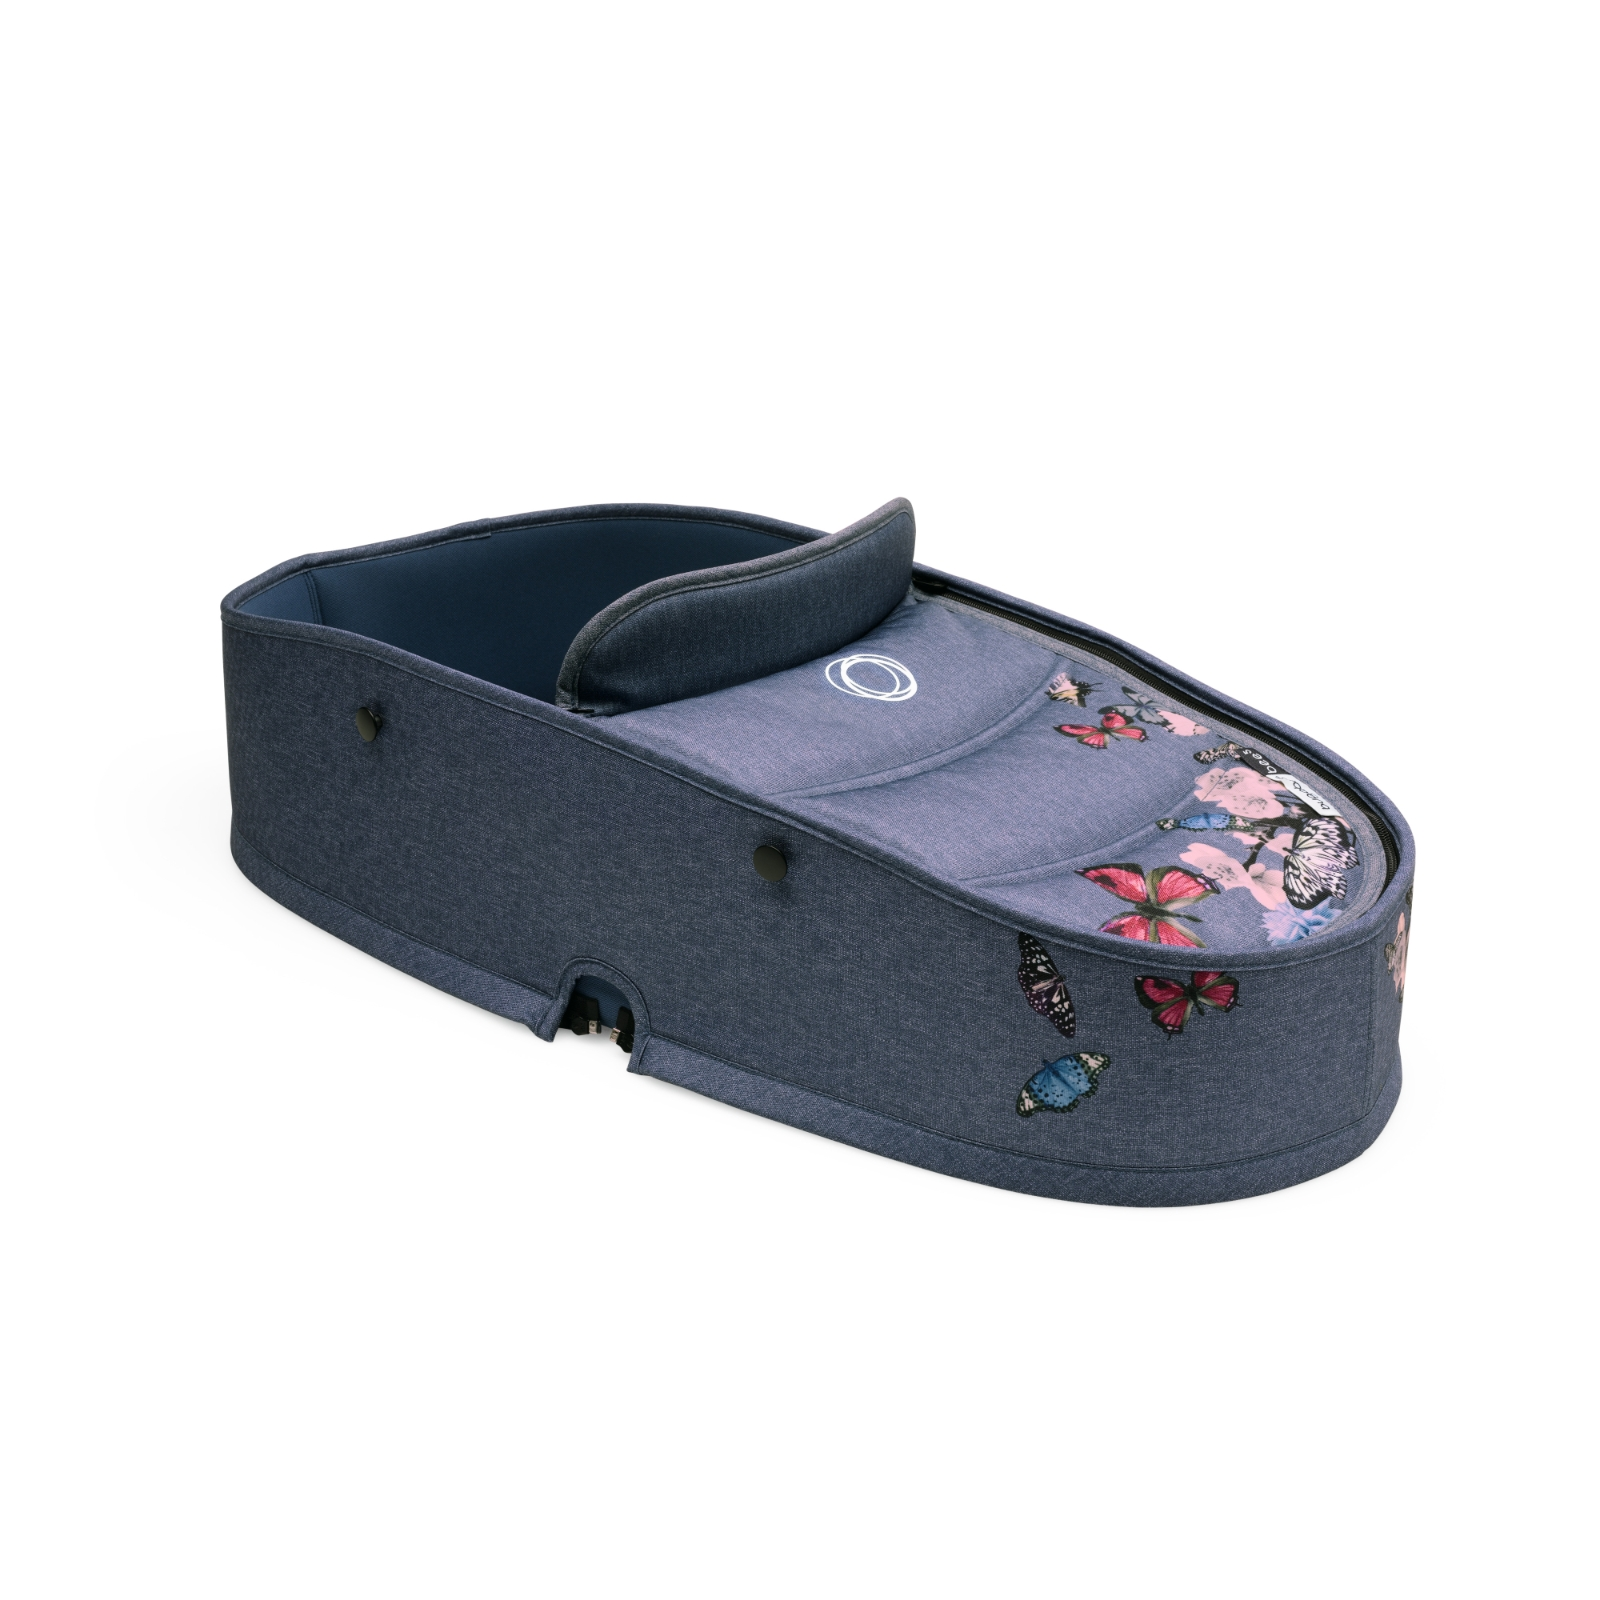 452aff492590 Bugaboo Bee 5 Carrycot Tailored Fabric Set - Botanic - £110.00 ...